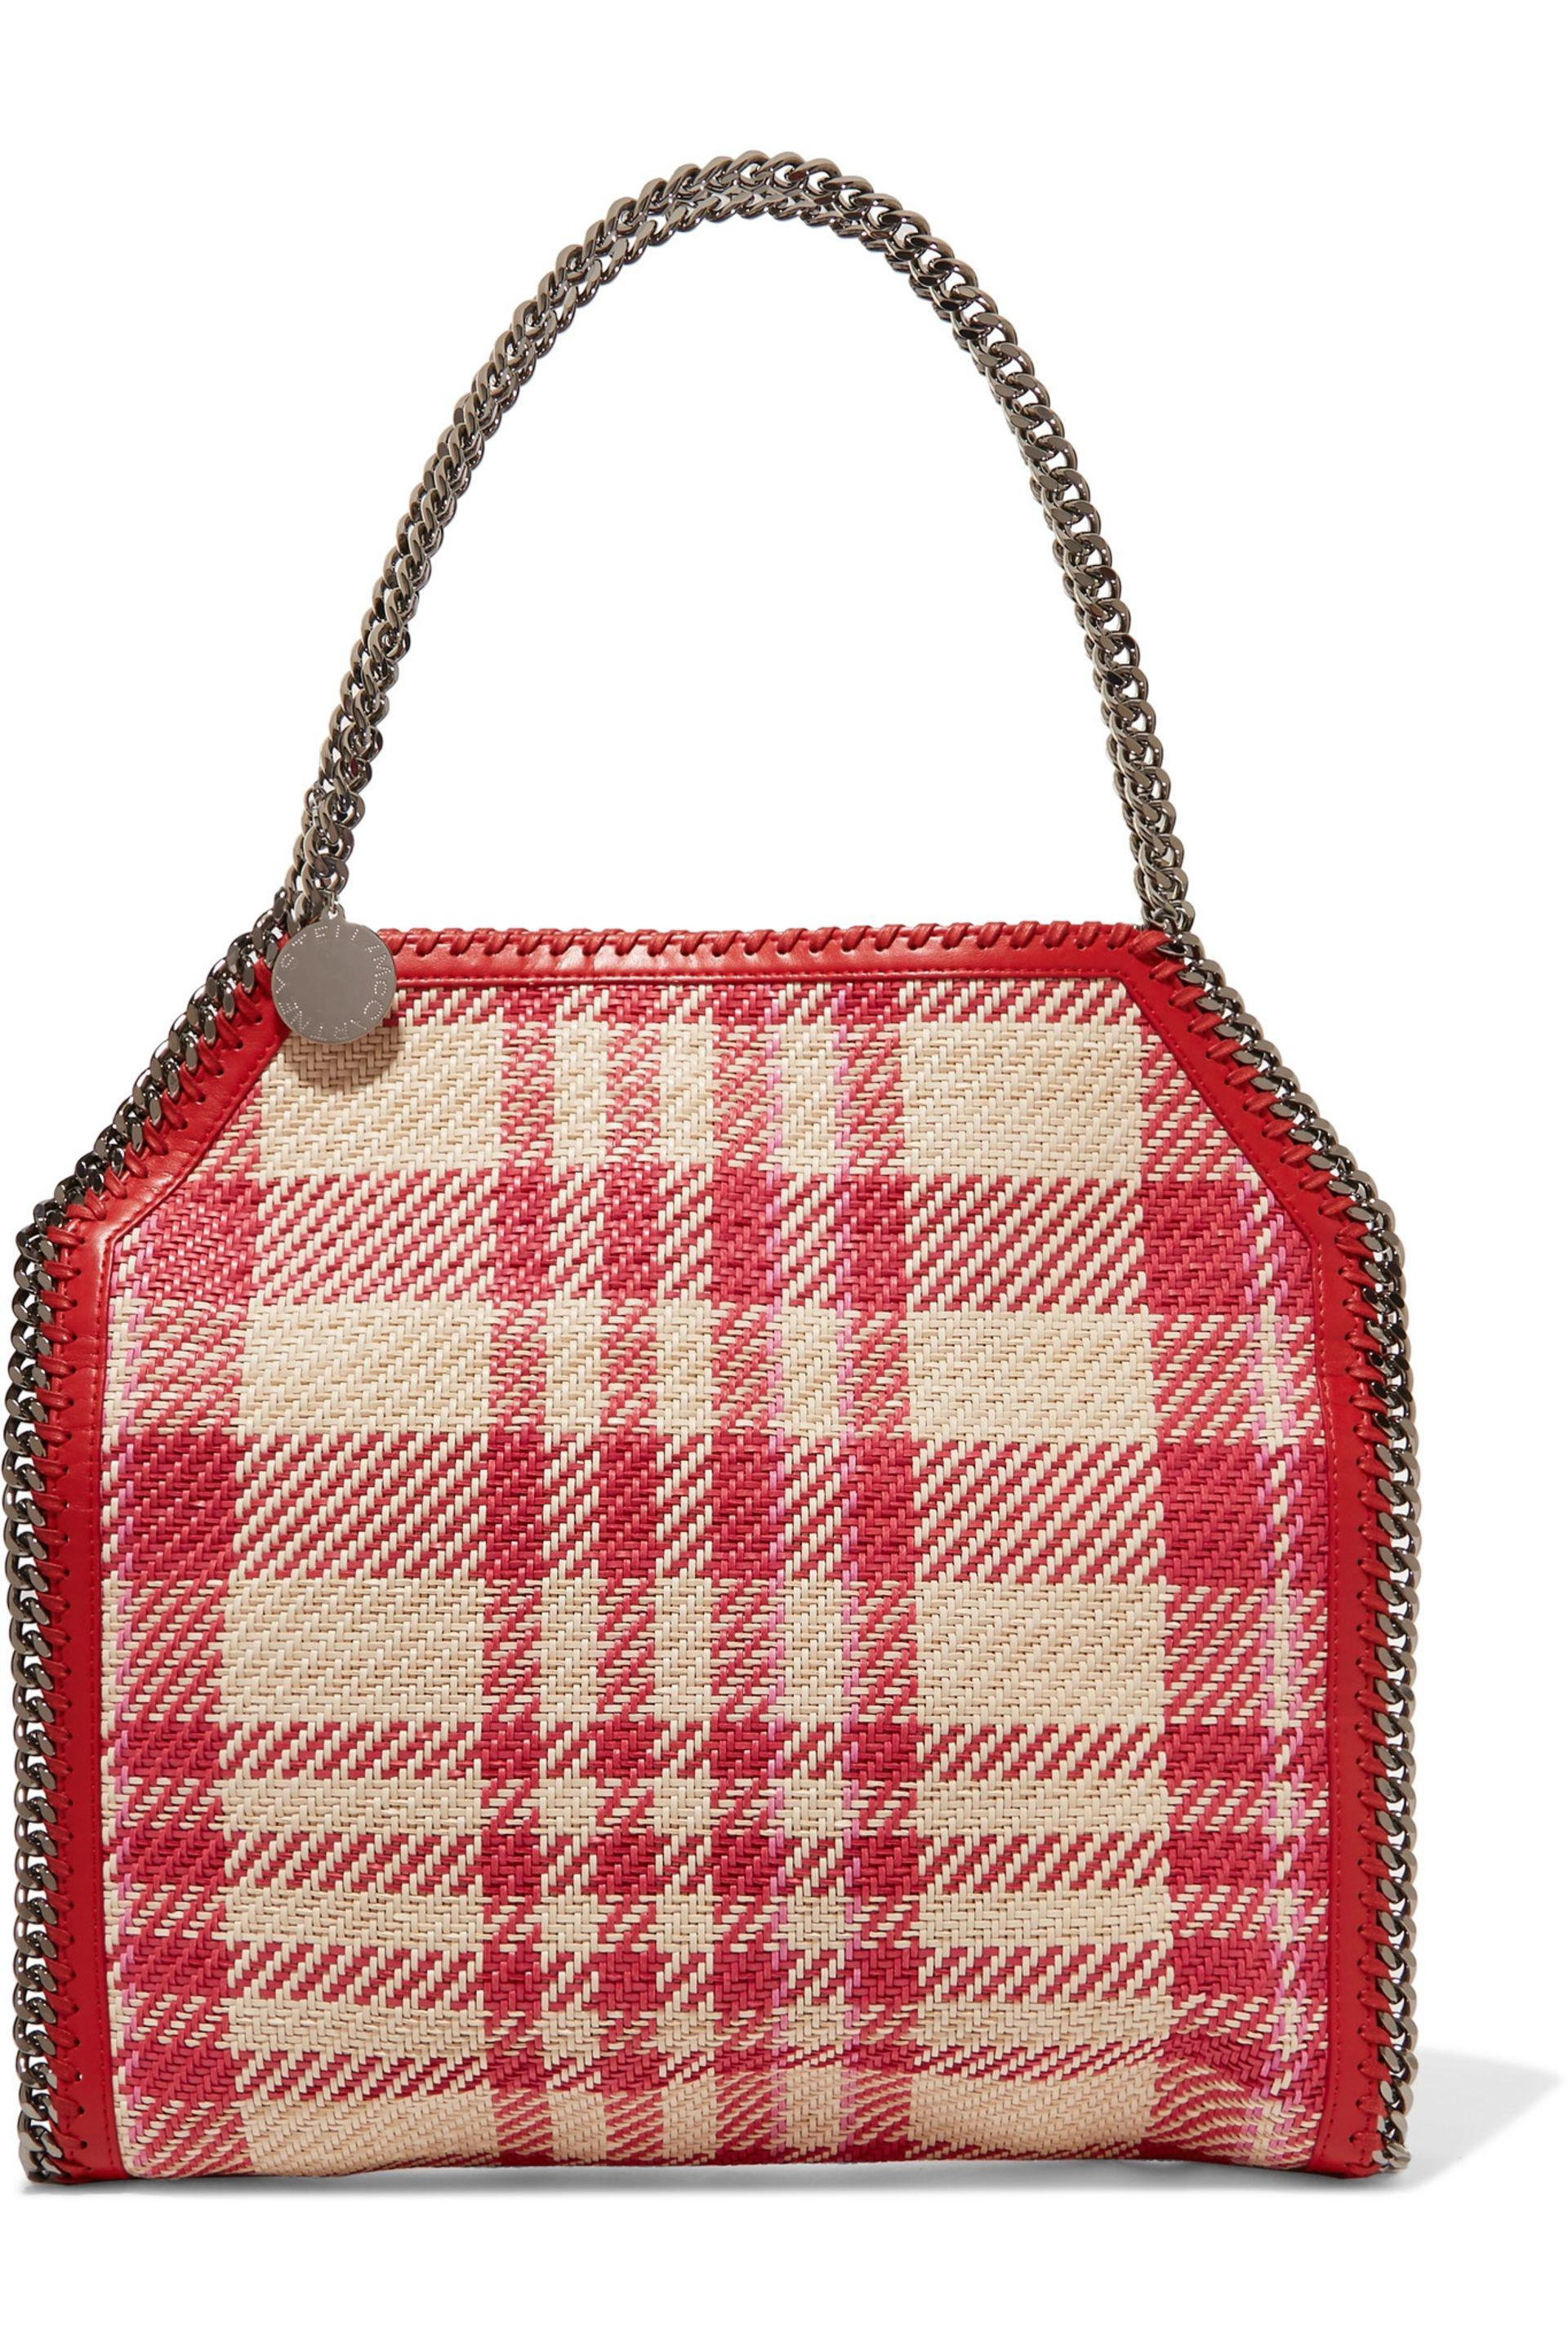 2d9cc613ca Lyst - Stella McCartney Woman Falabella Checked Woven Faux-leather ...